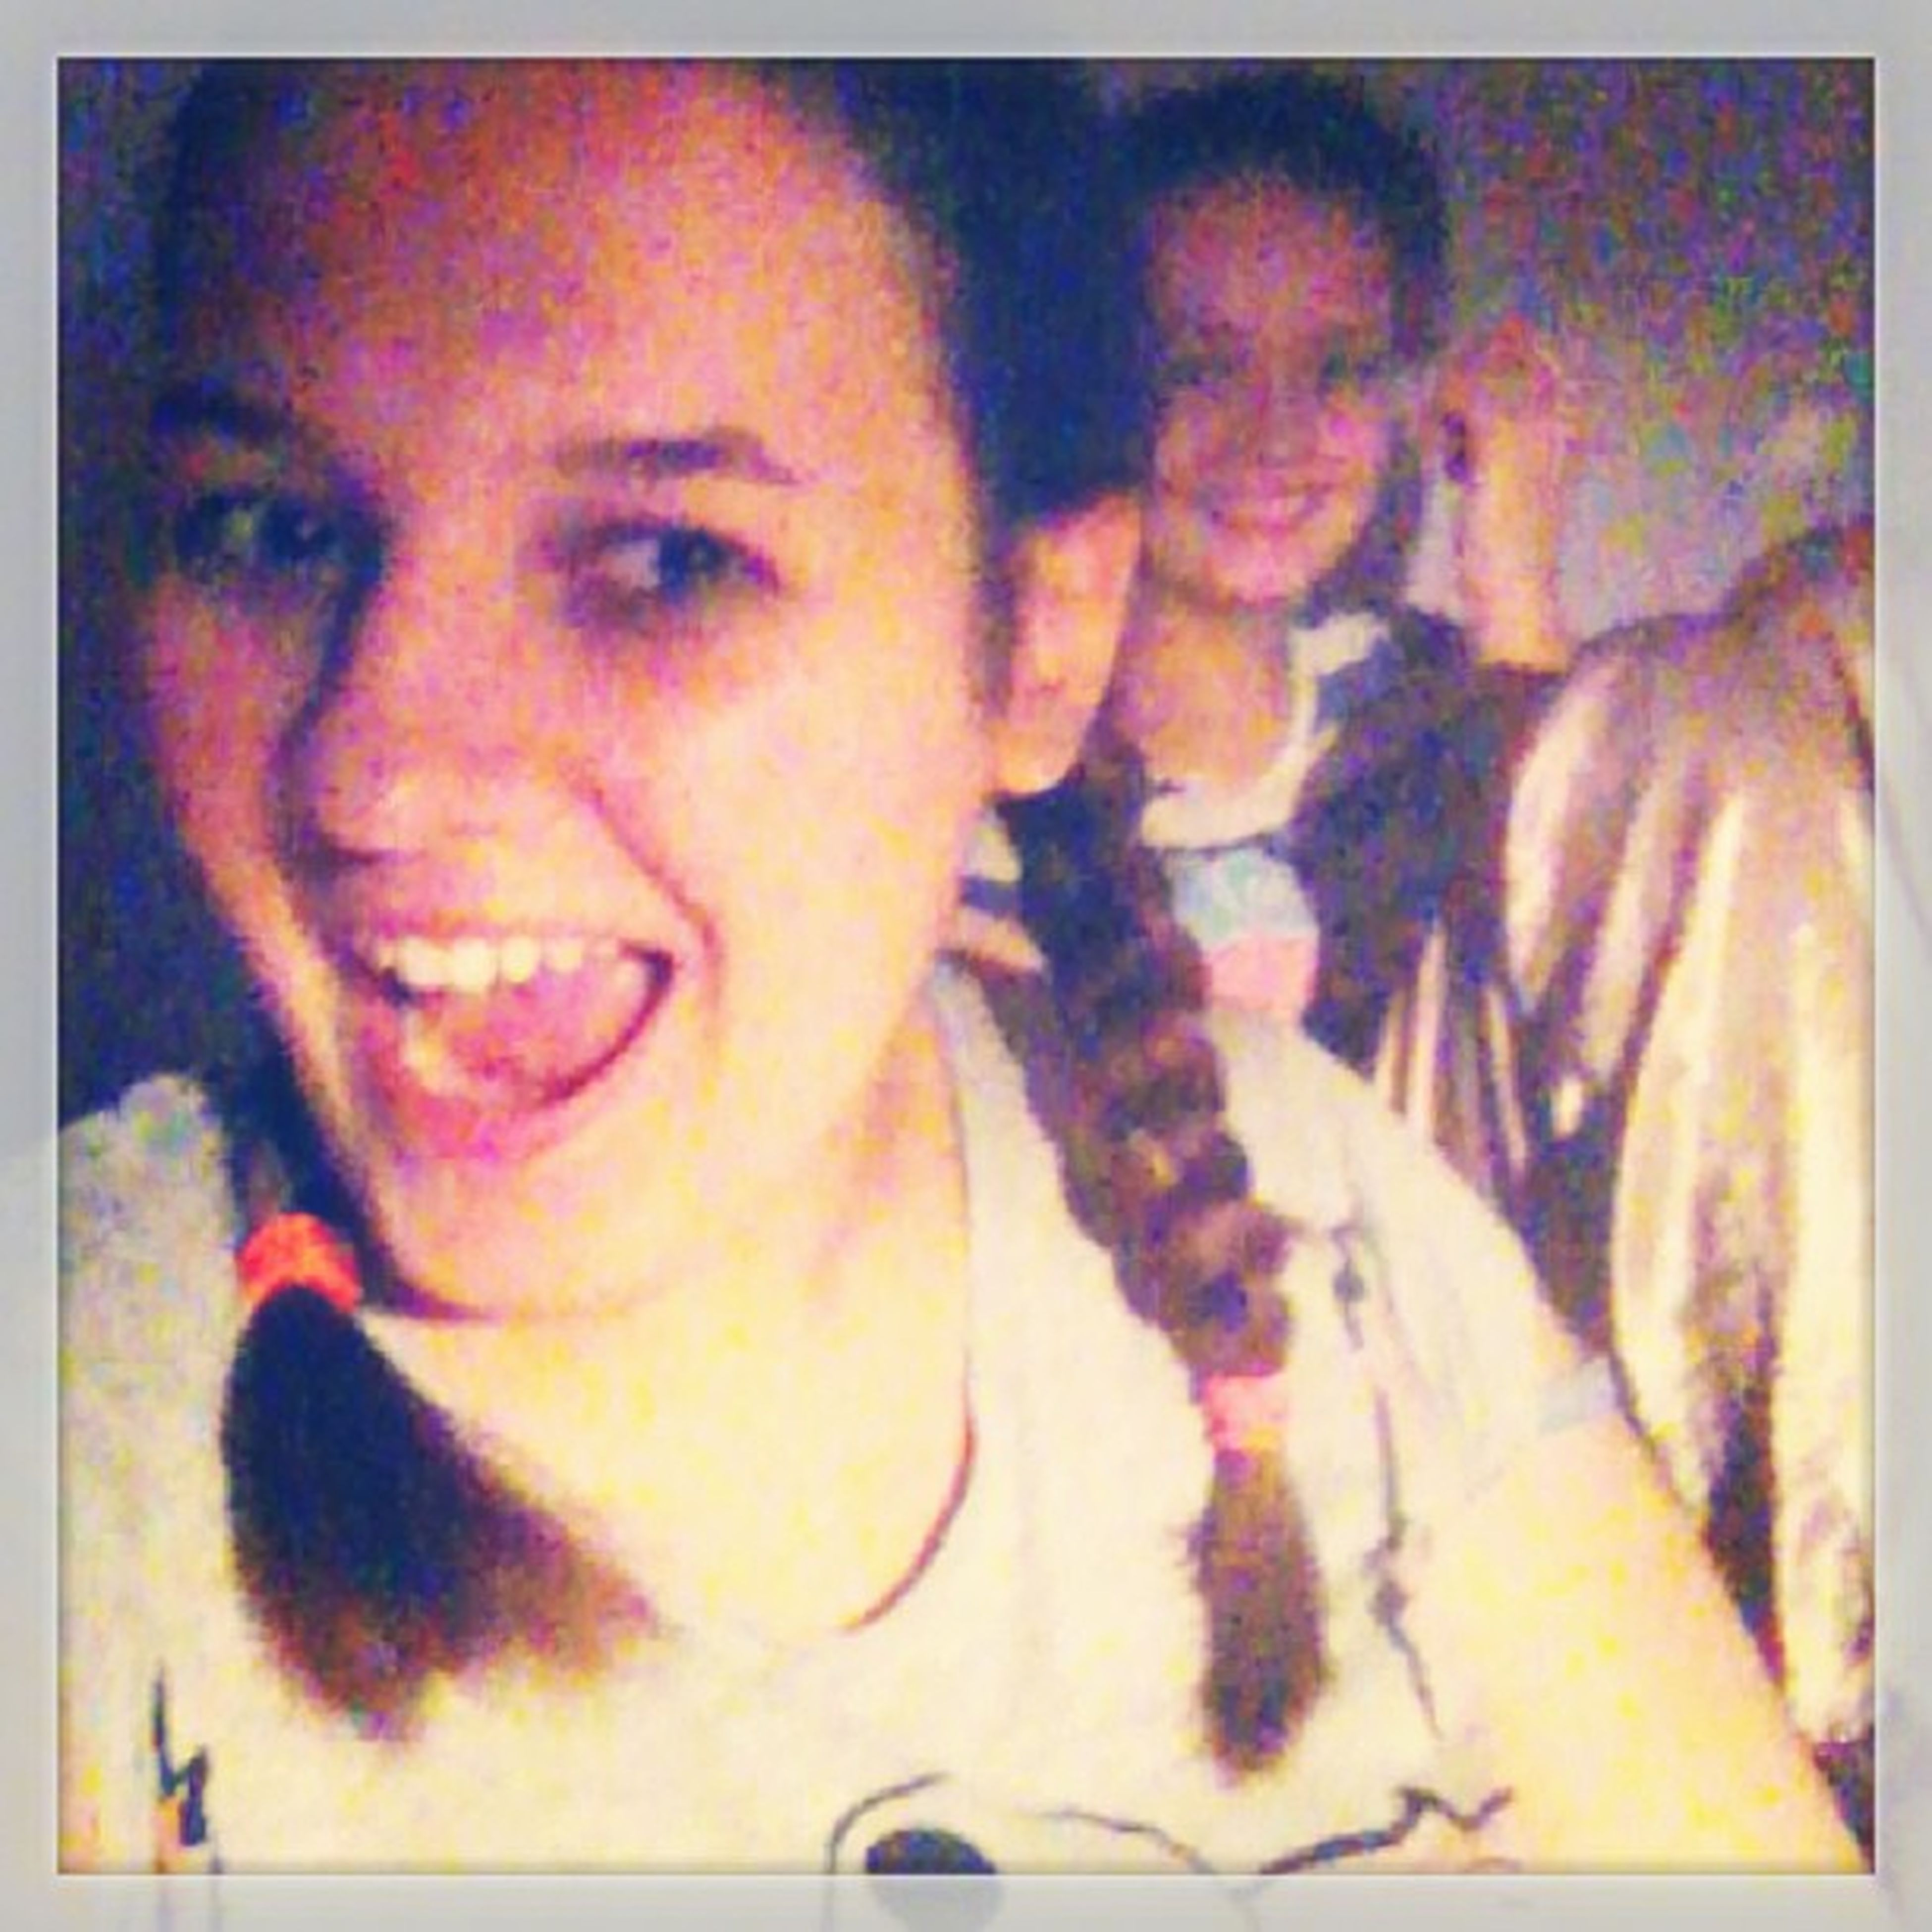 Evening fun with the sister ? Donemyhair Plats Braids Sisters